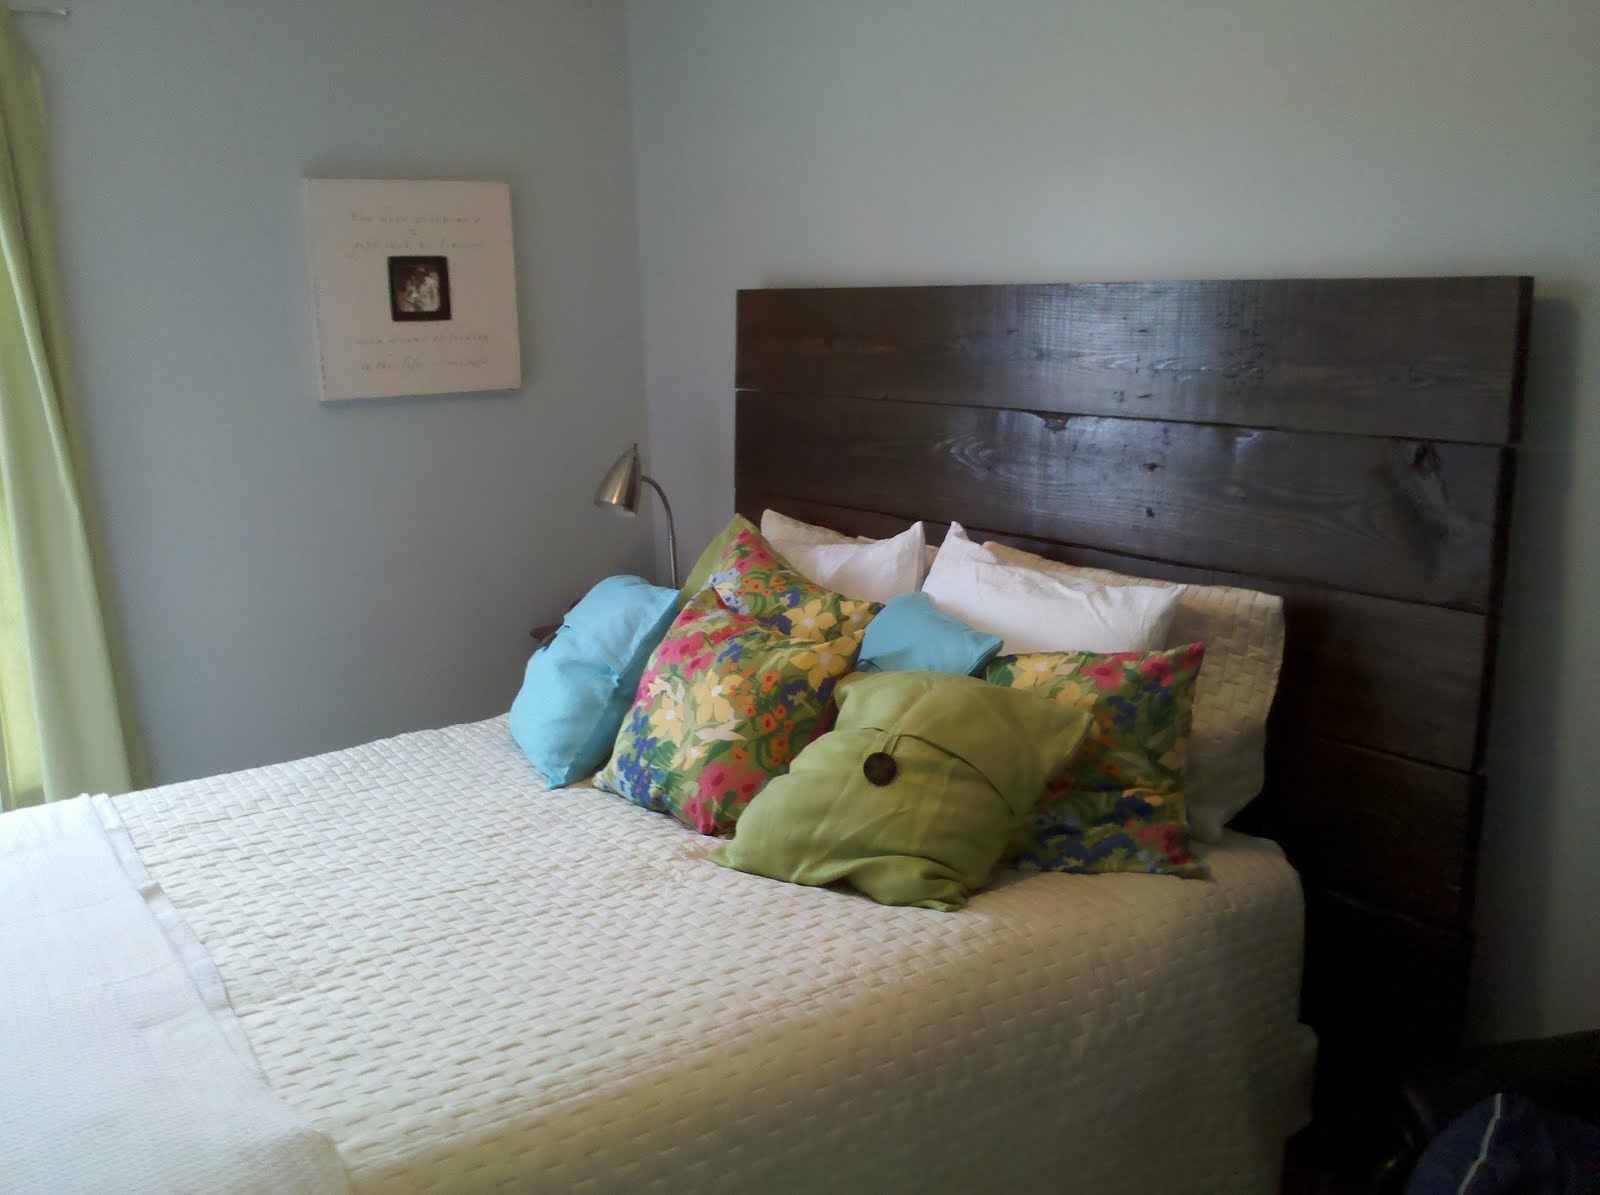 Bedroom Decorating Ideas Headboards diy headboard ideas. fabulous diy upholstered headboard ideas with